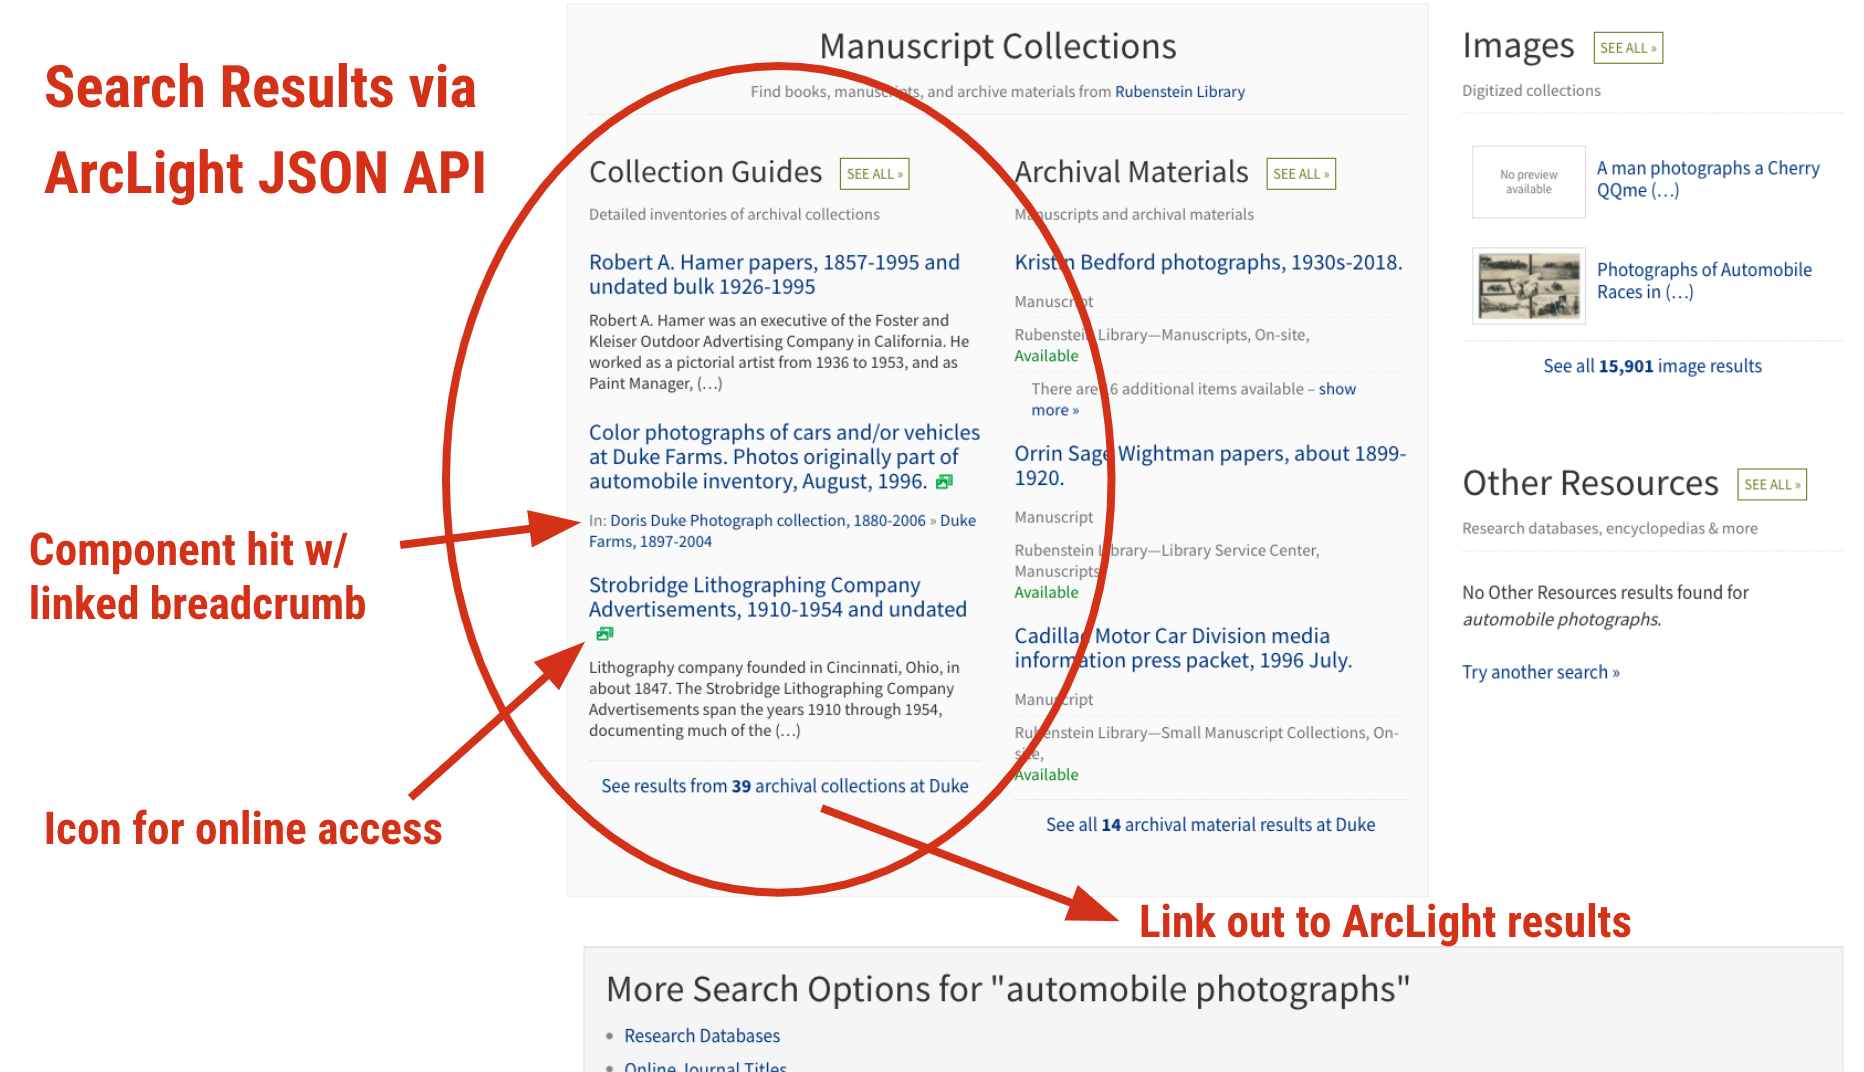 ArcLight search results presented in Bento search UI